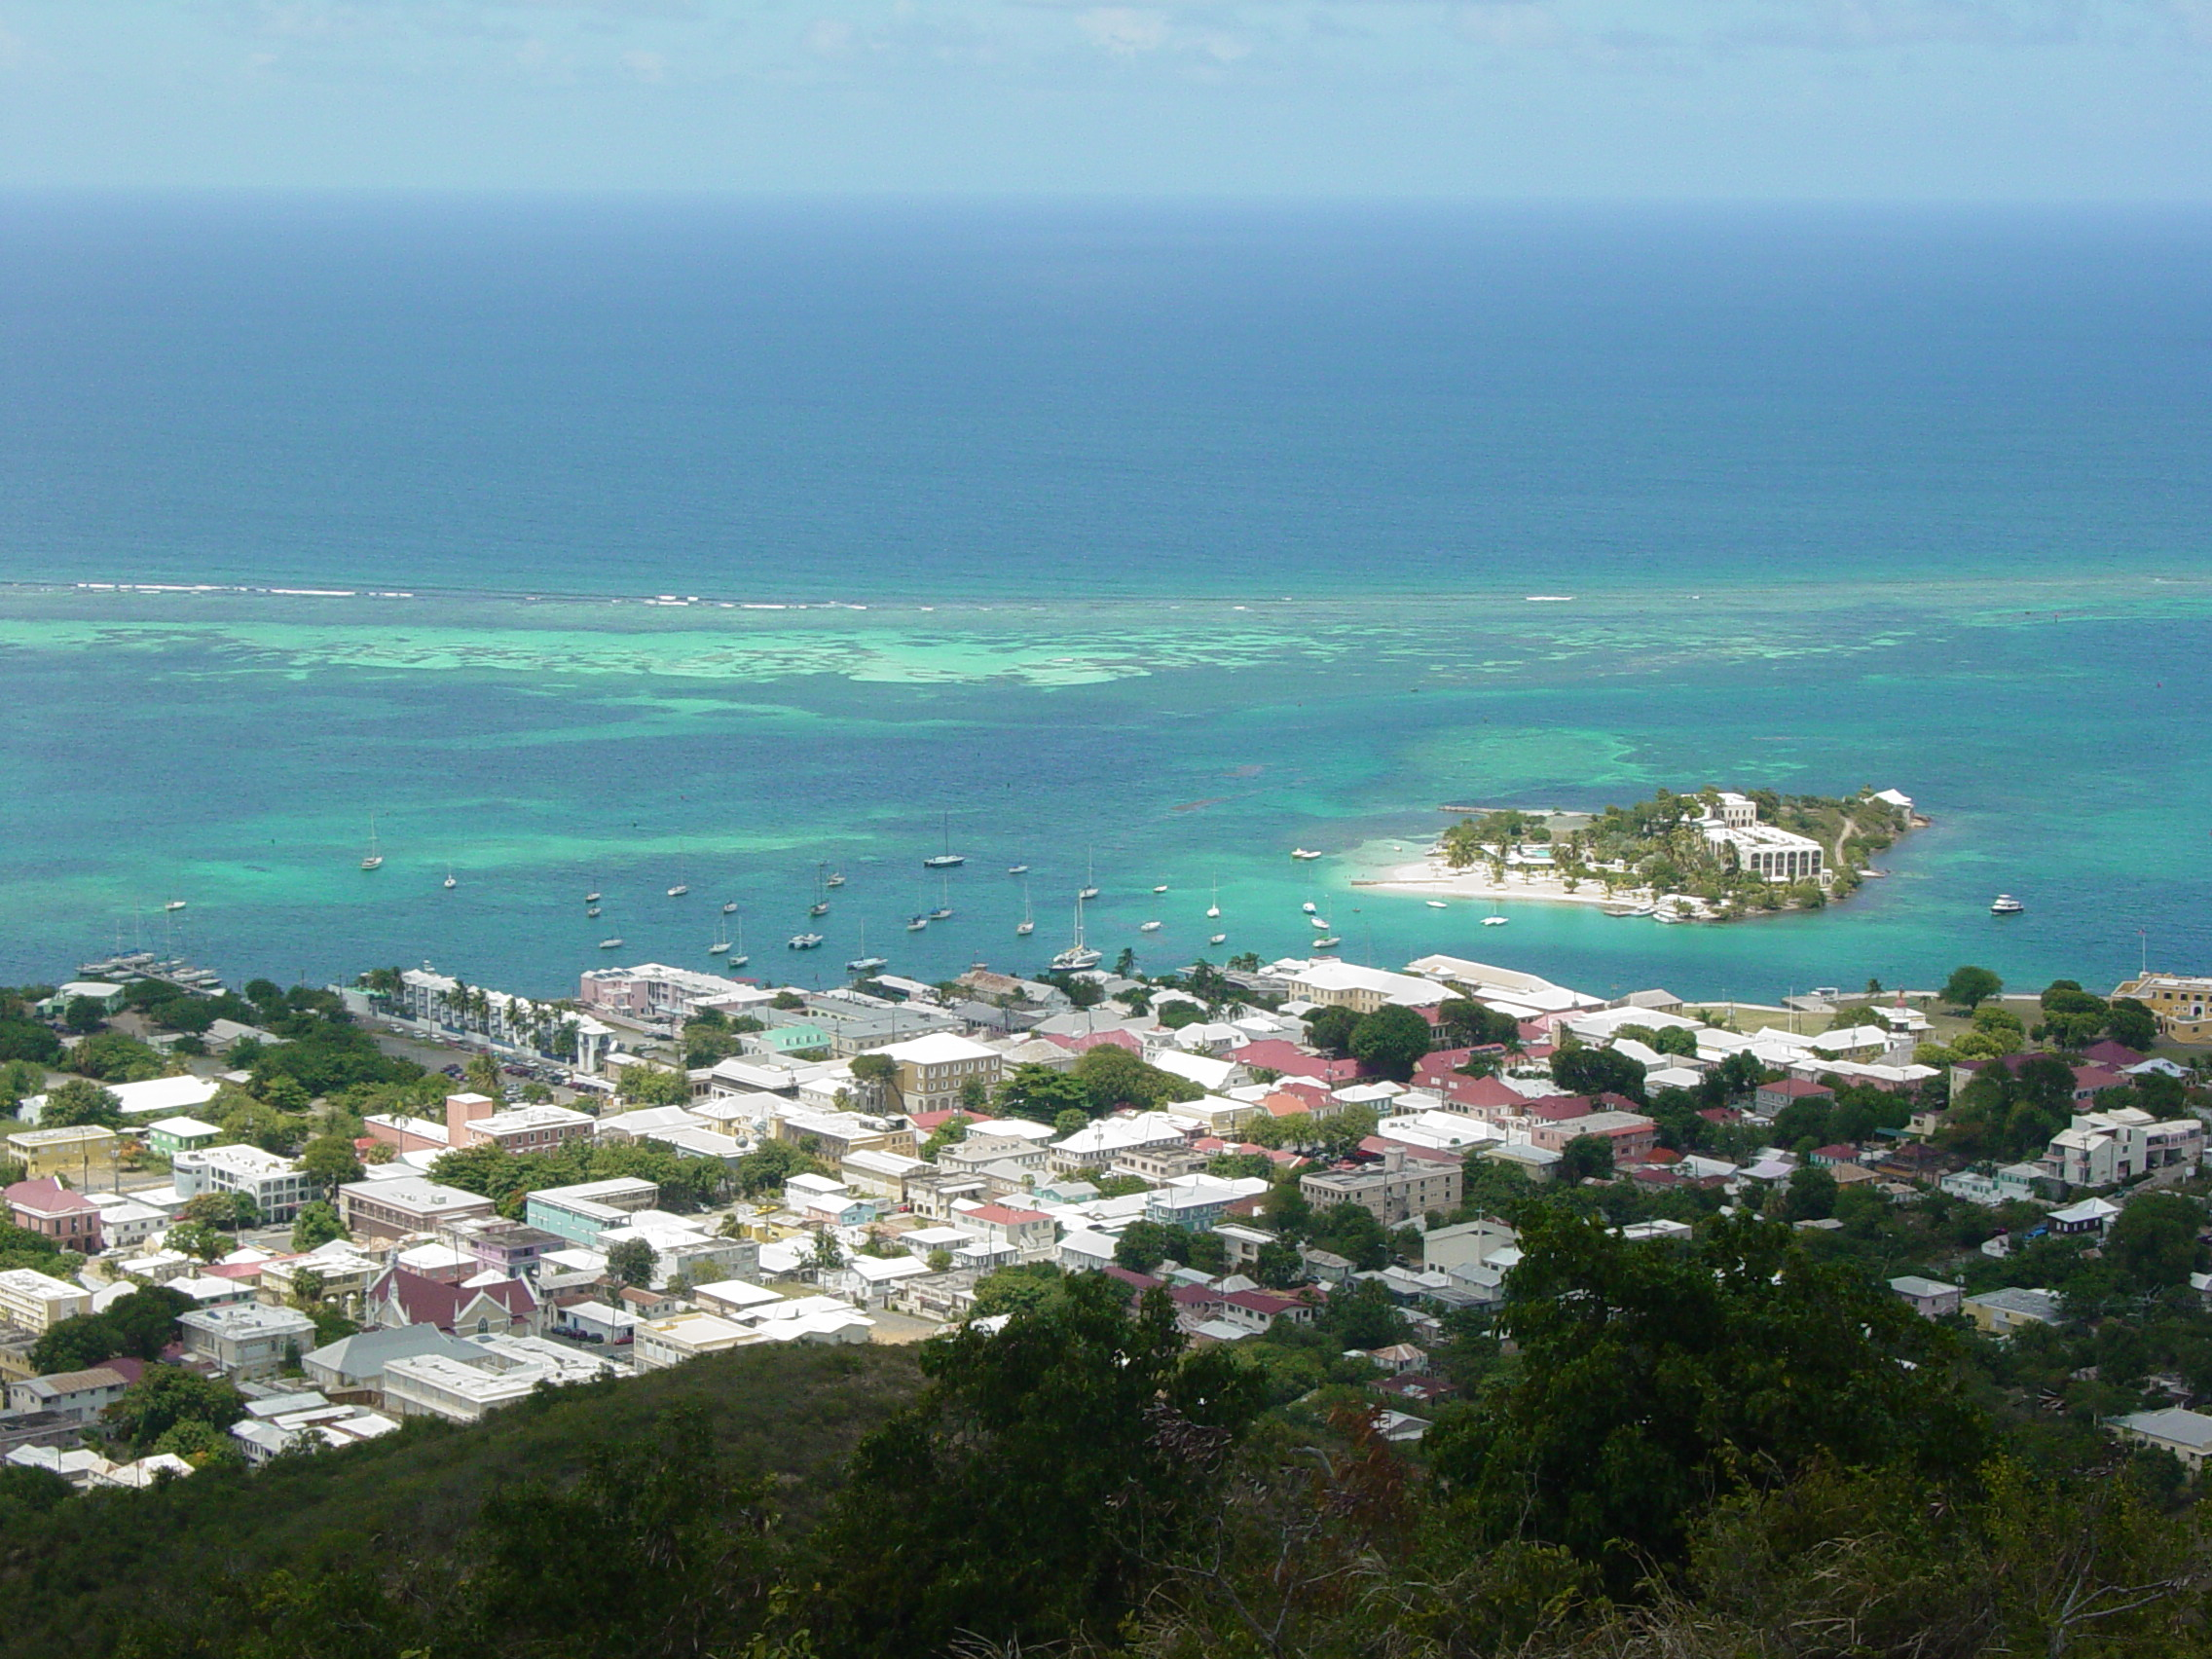 laws of life essay virgin islands Law writing, immigration, and globalization in the british virgin islands bill maurer in this article mr bill maurer addresses a fundamental tension.